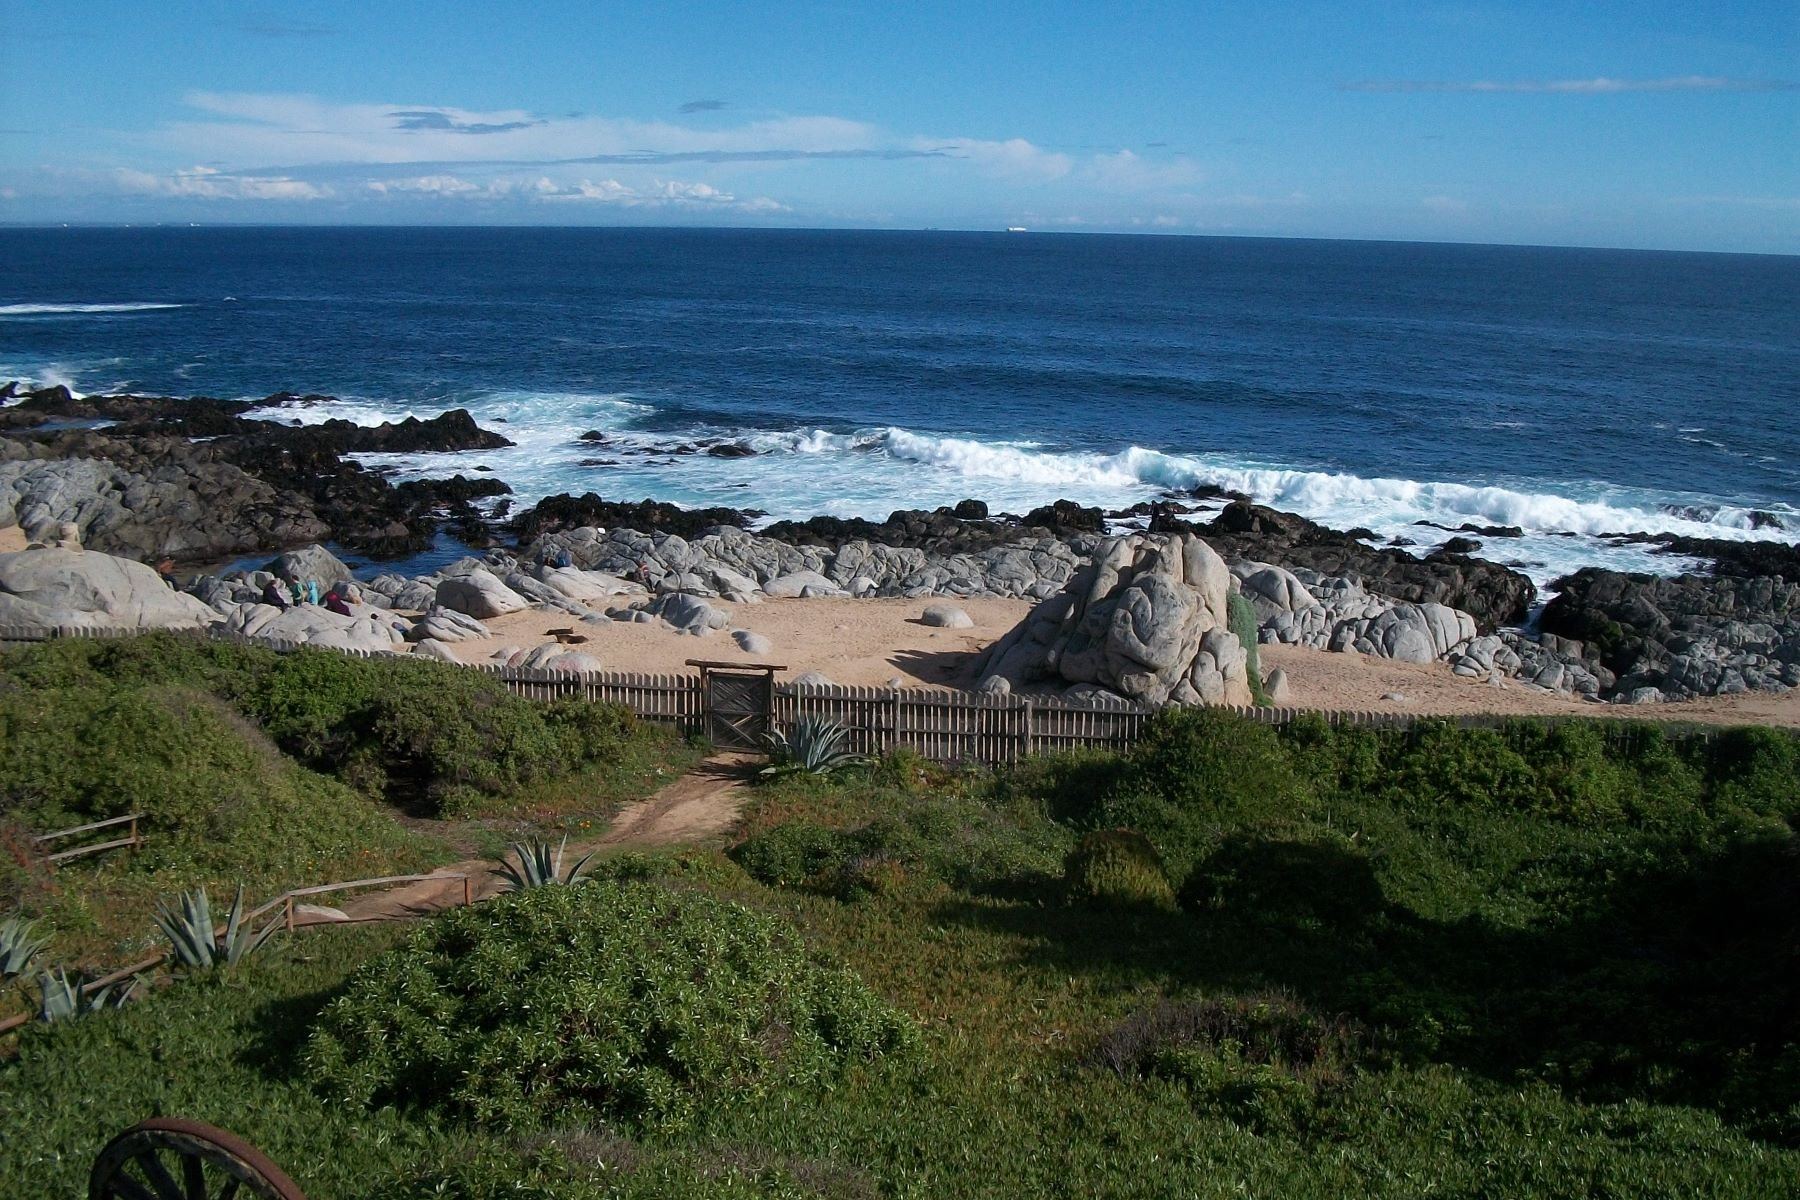 Land for Sale at Spectacular Lot by the Ocean for a Real Estate Project in ISLA NEGRA Valparaiso, Valparaiso Chile